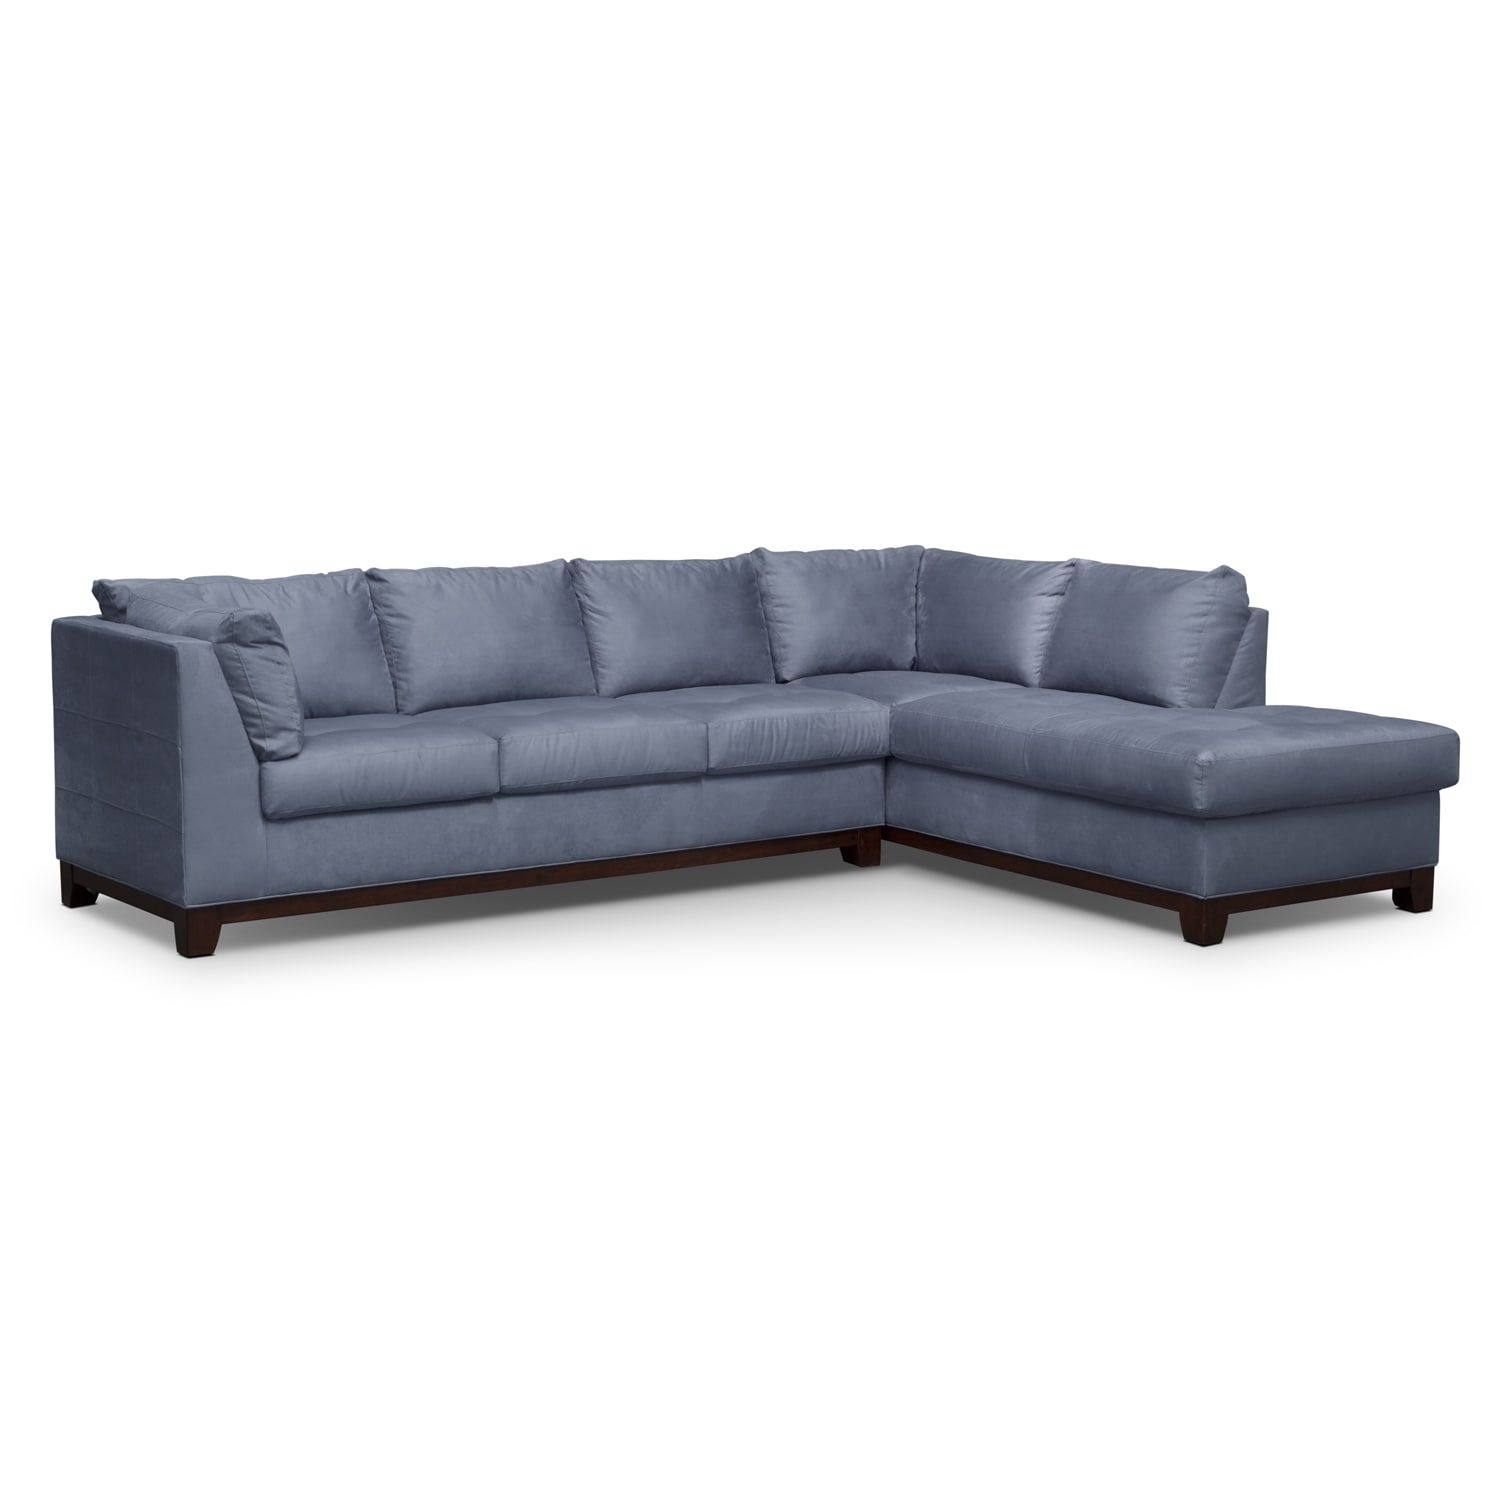 Soho 2 piece sectional with right facing chaise steel for Signature furniture